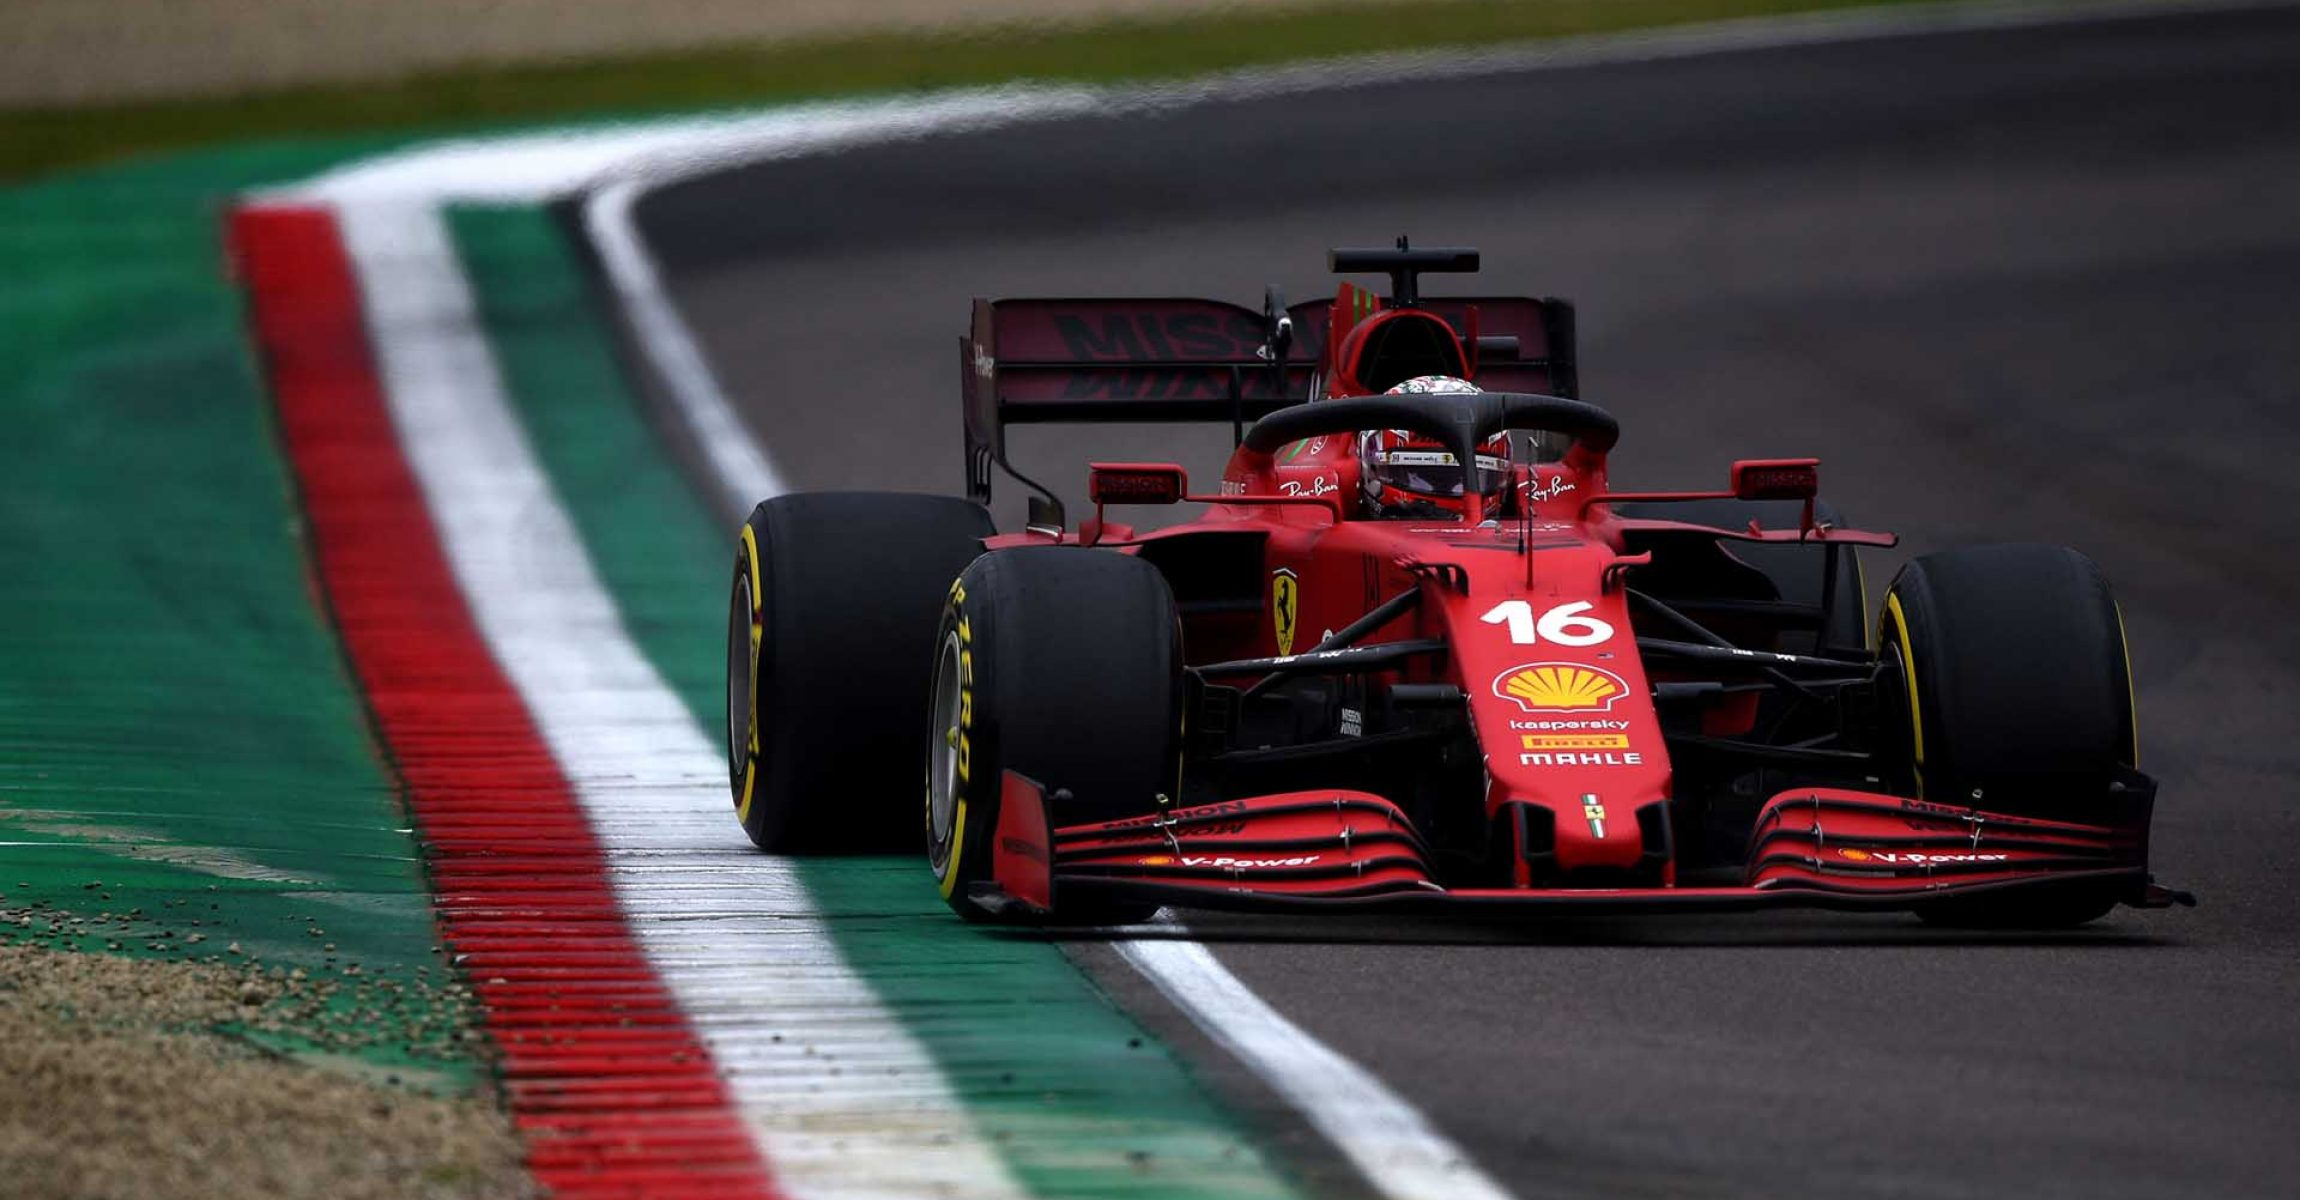 GP DELL'EMILIA ROMAGNA  F1/2021 - DOMENICA 18/04/2021 credit: @Scuderia Ferrari Press Office Charles Leclerc